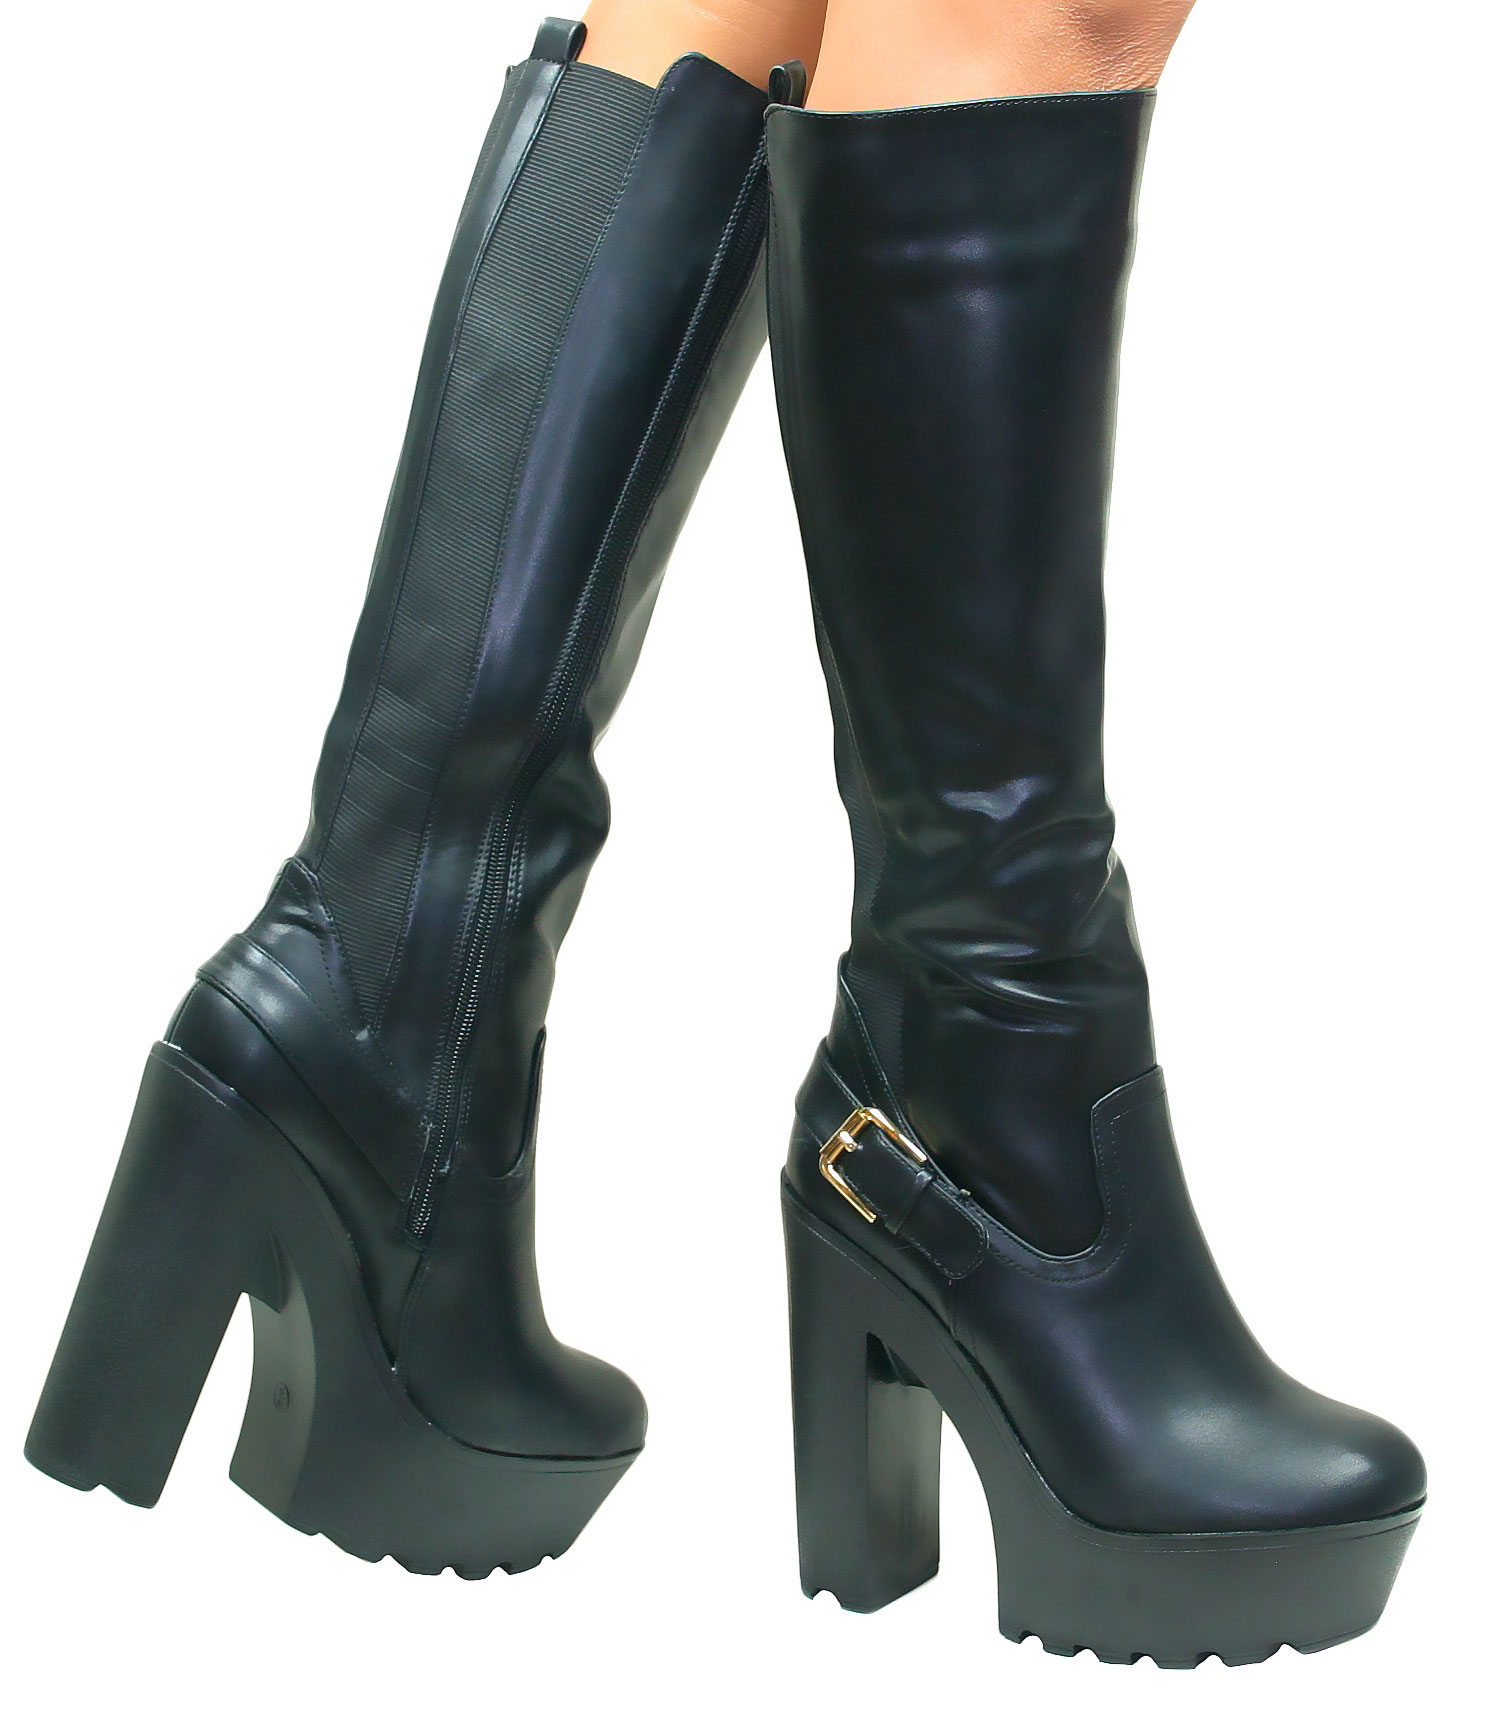 Fetish Boots - Exotic High Heels